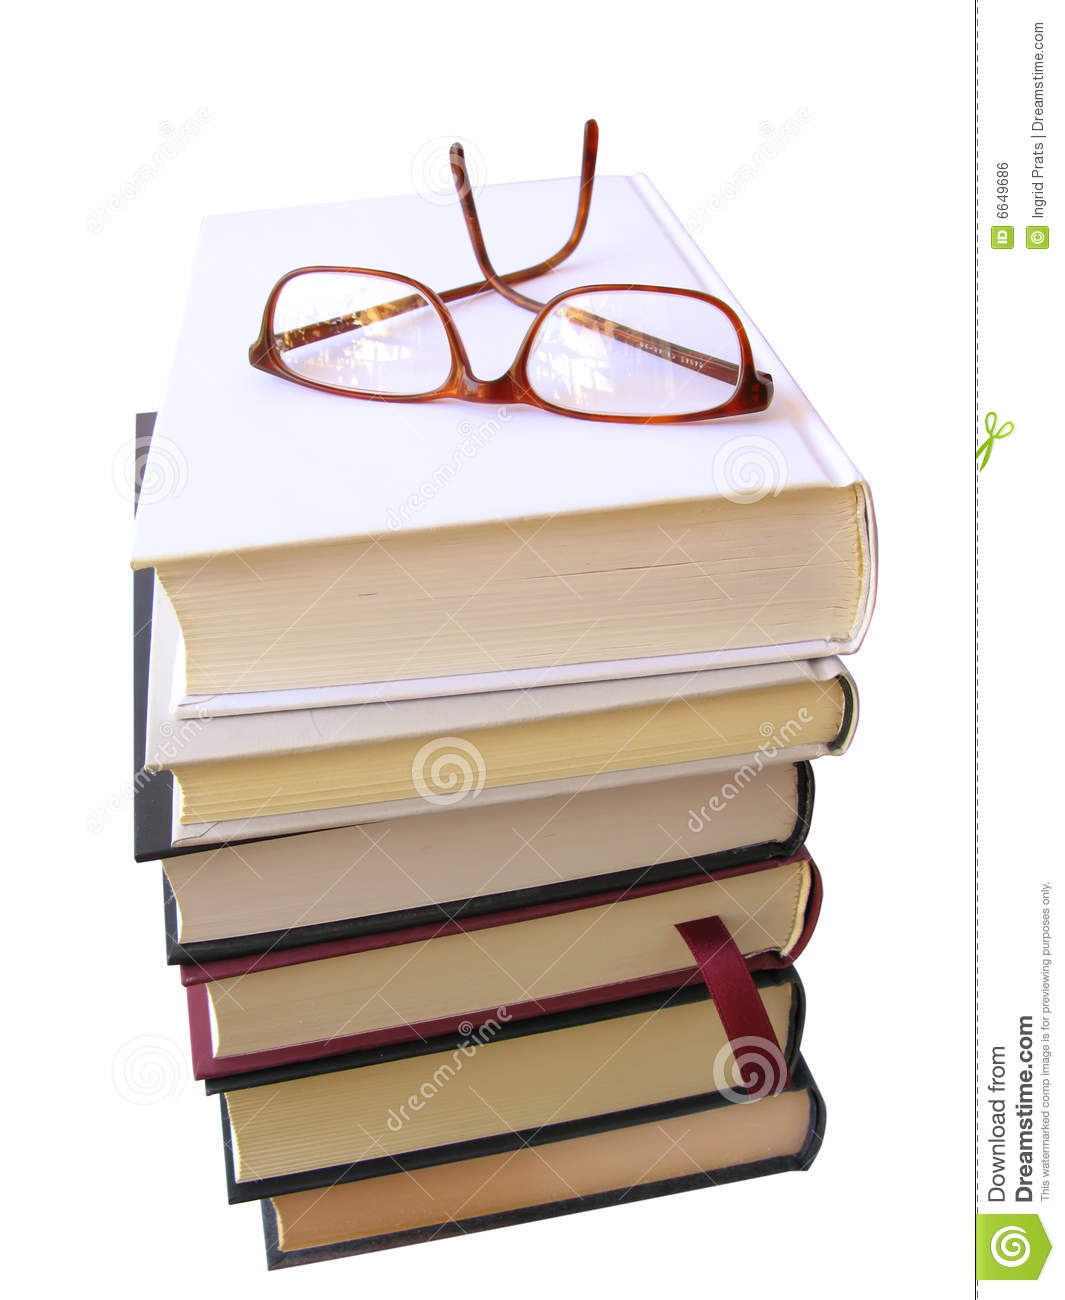 glasses on book - photo #33